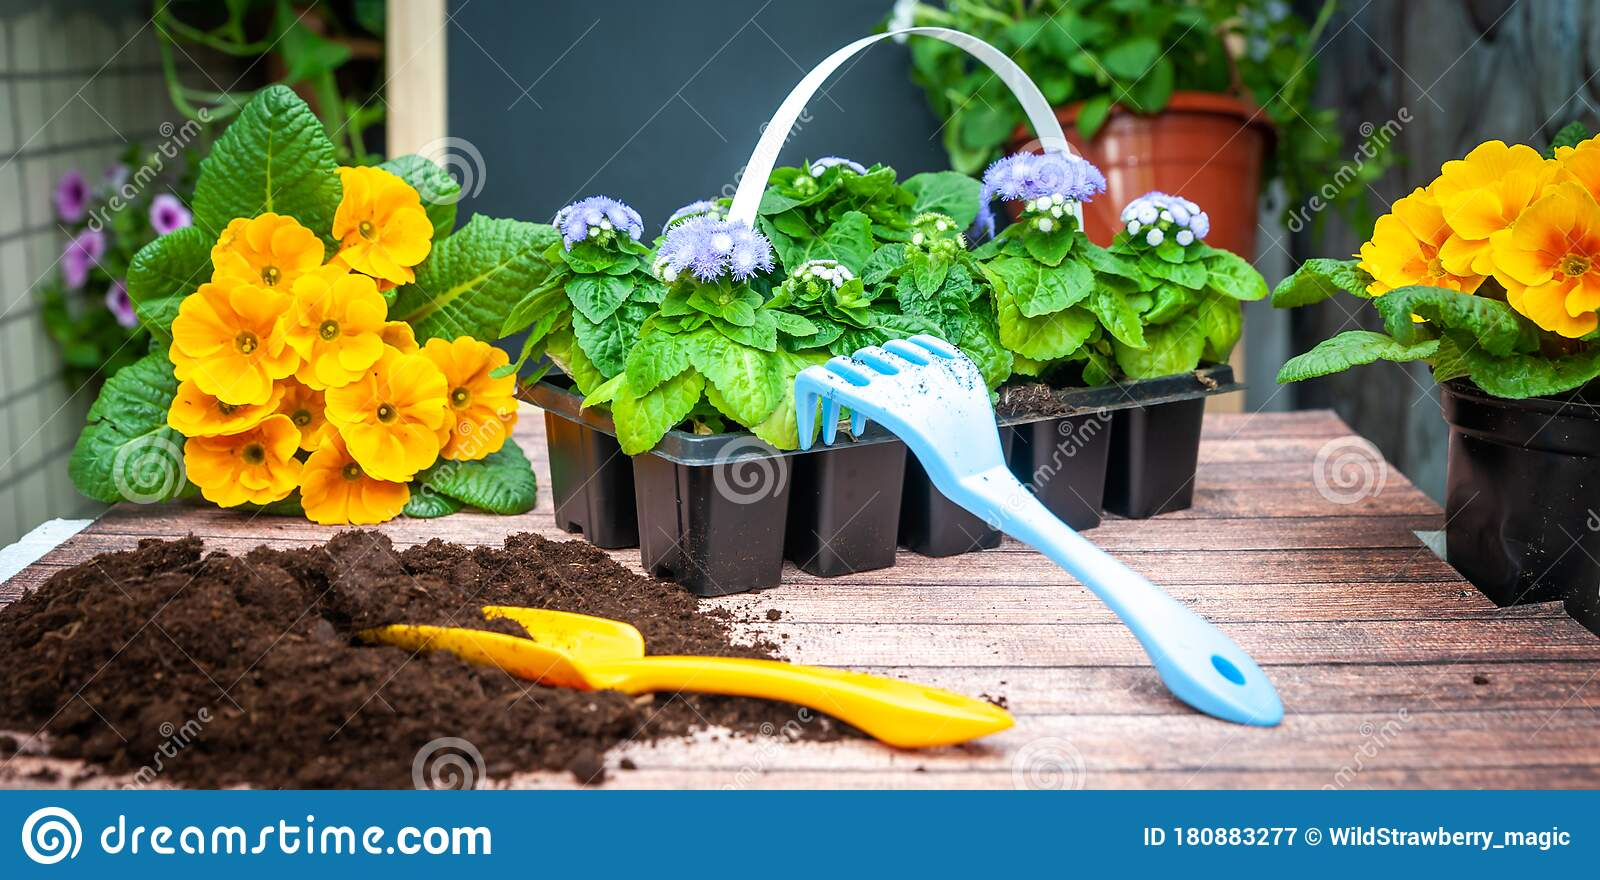 965 Gardening Planning Photos Free Royalty Free Stock Photos From Dreamstime